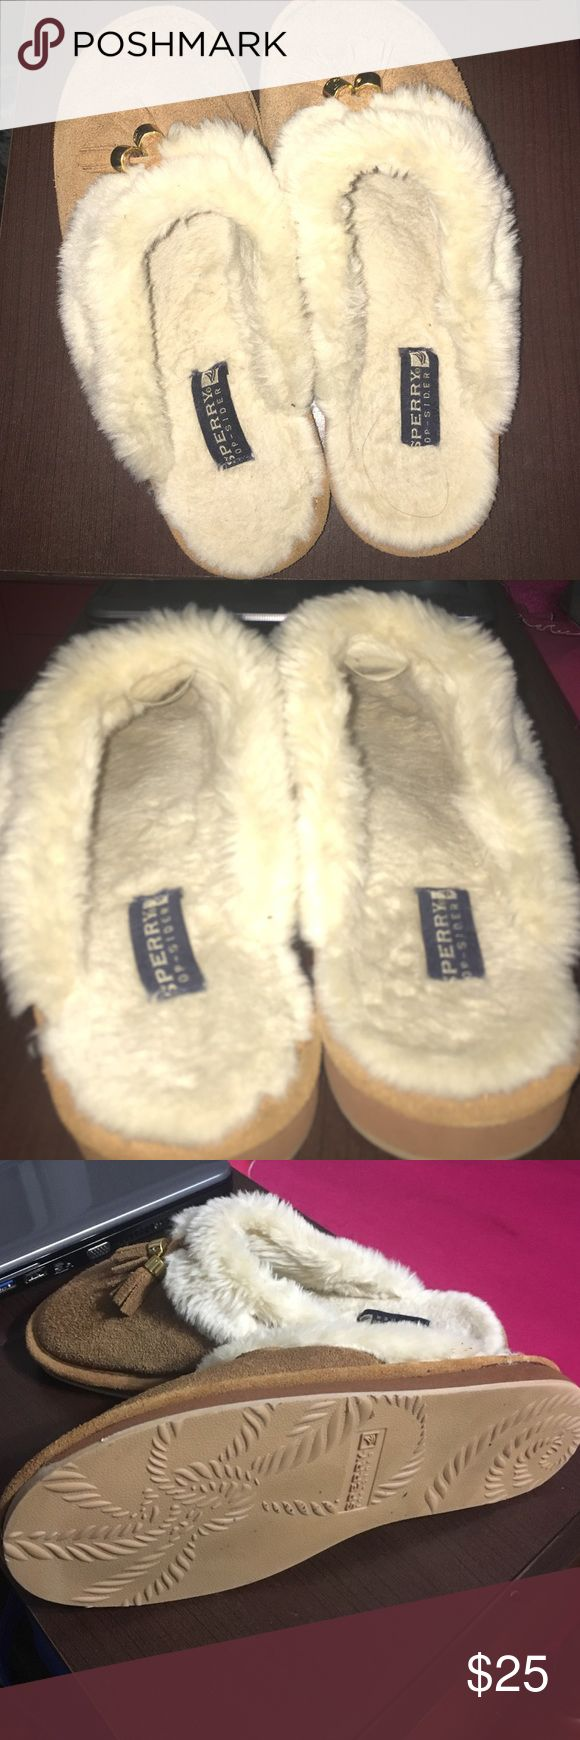 Sperry Slippers! I consider all offers and questions are welcome! Sperry Top-Sider Shoes Moccasins